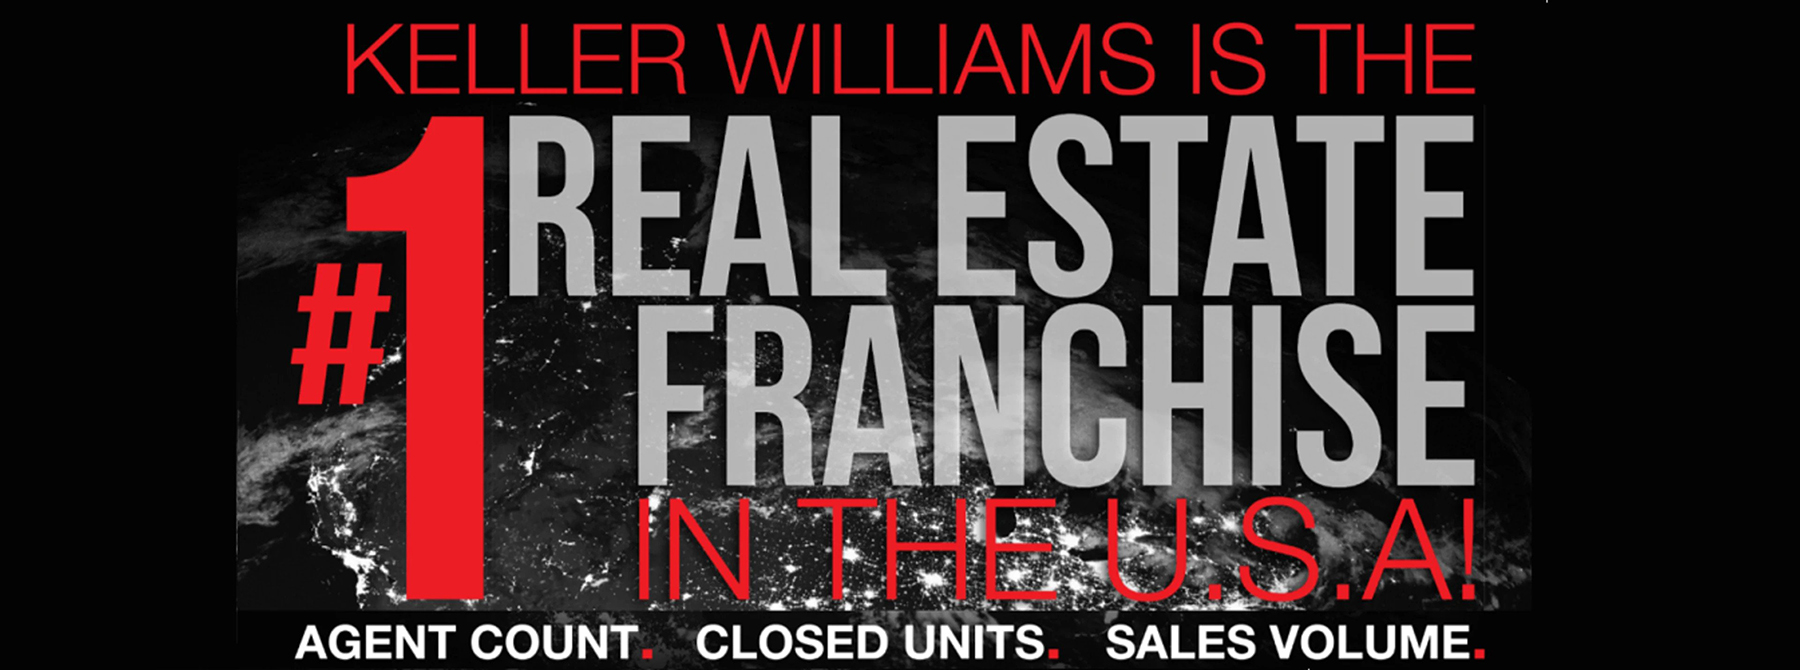 Keller Williams has quickly risen to the #1 Real Estate Franchise in the United States and shows no signs of slowing down!